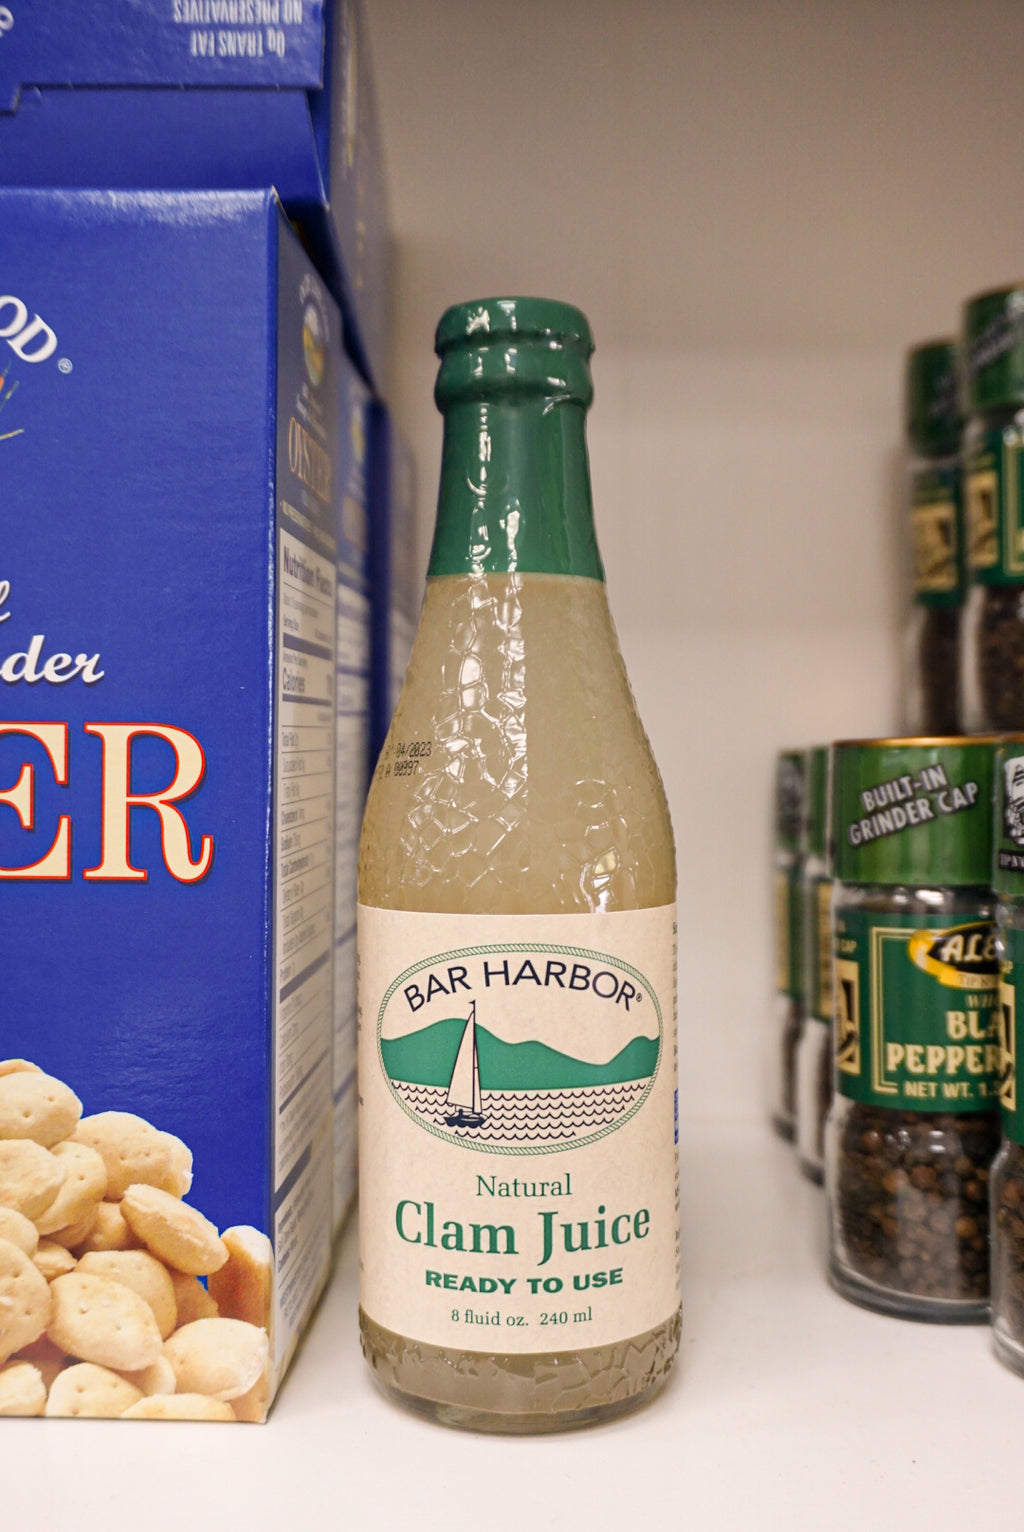 Bar Harbor Clam Juice 8 oz.